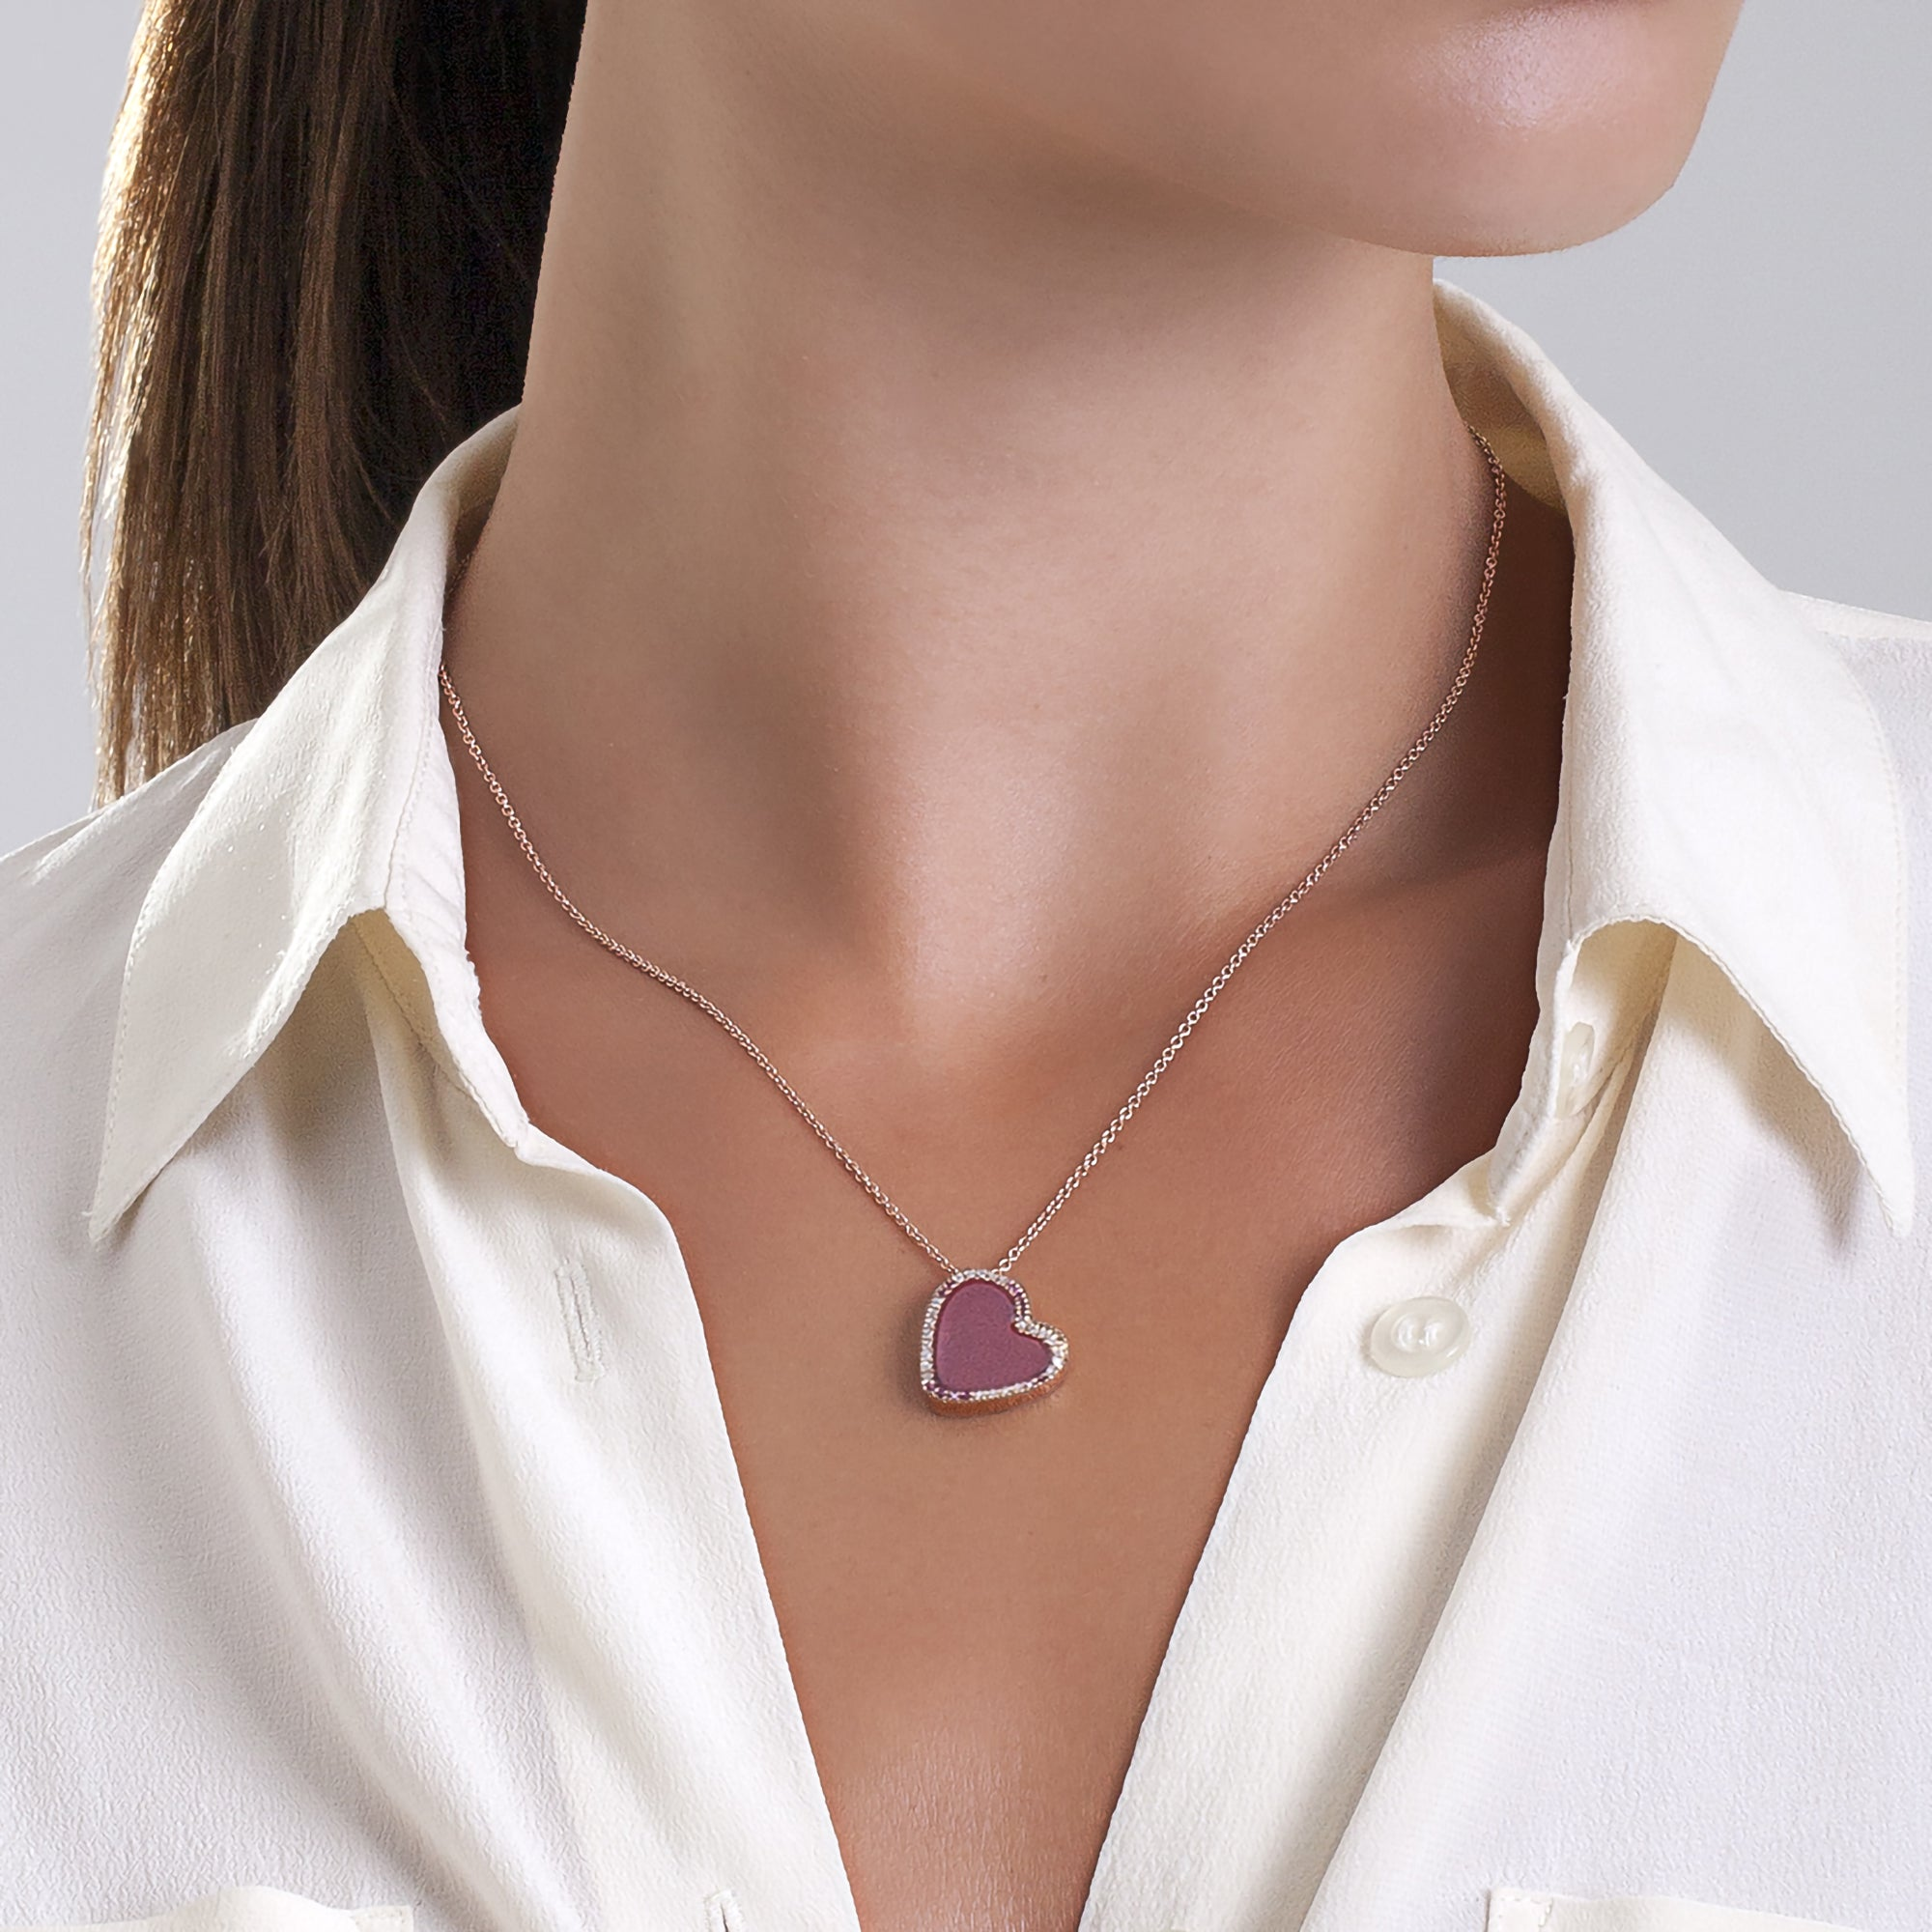 Collana Pria De Ma in oro rosa 9kt con diamanti ice e rubini